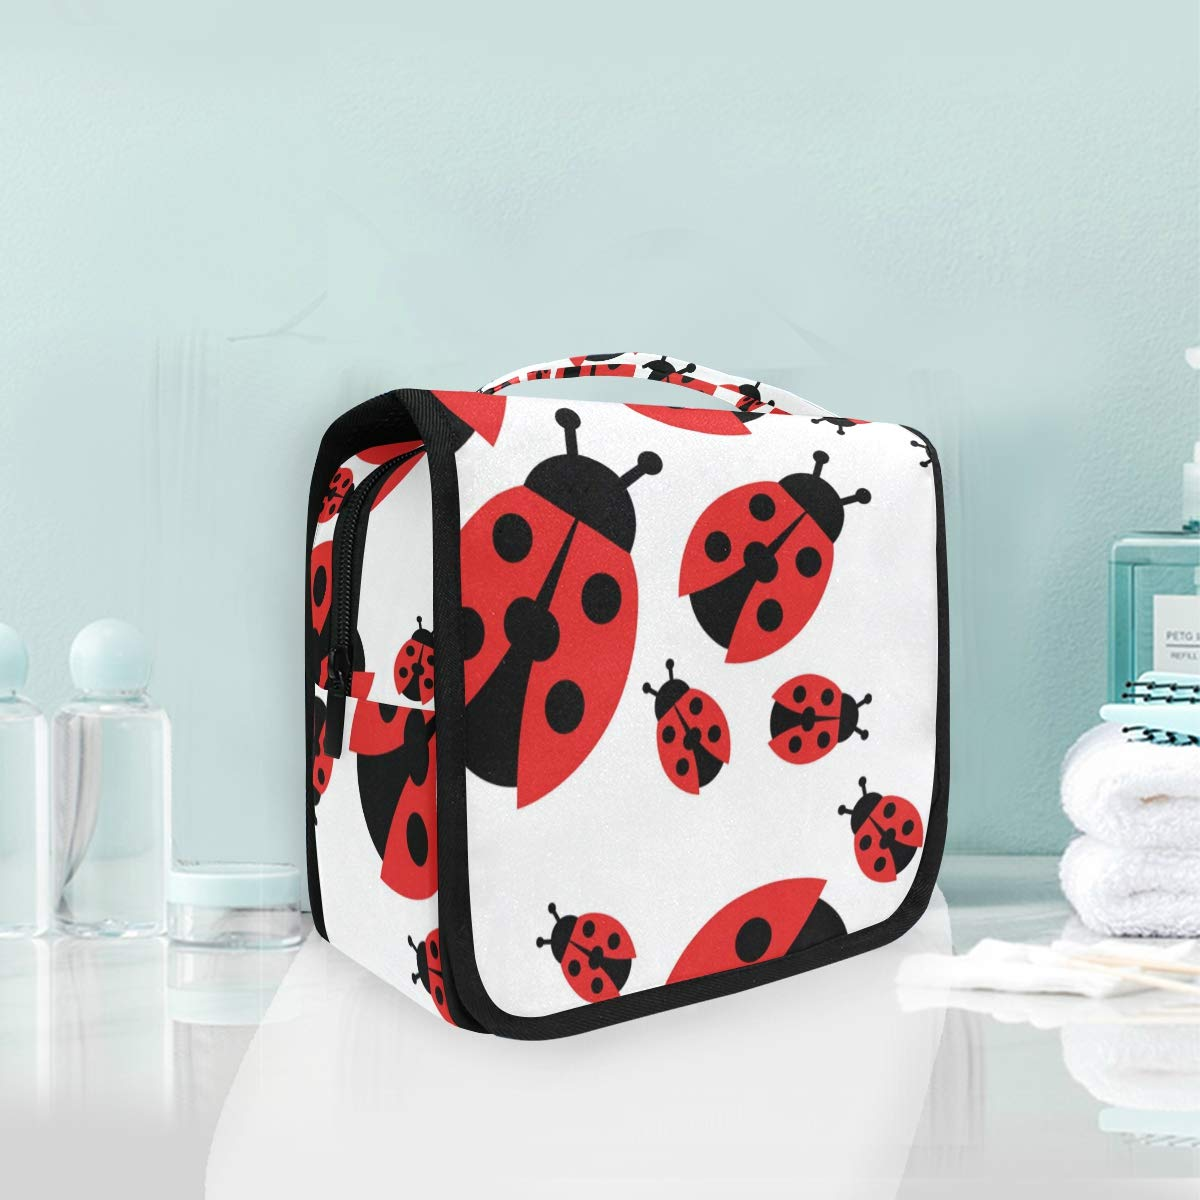 ZZAEO Ladybird Seamless Ladybug Pattern Hanging Toiletry Bag - Large Capacity Women Travel Business Cosmetic Organizer Portable Makeup Pouch with Sturdy Hook